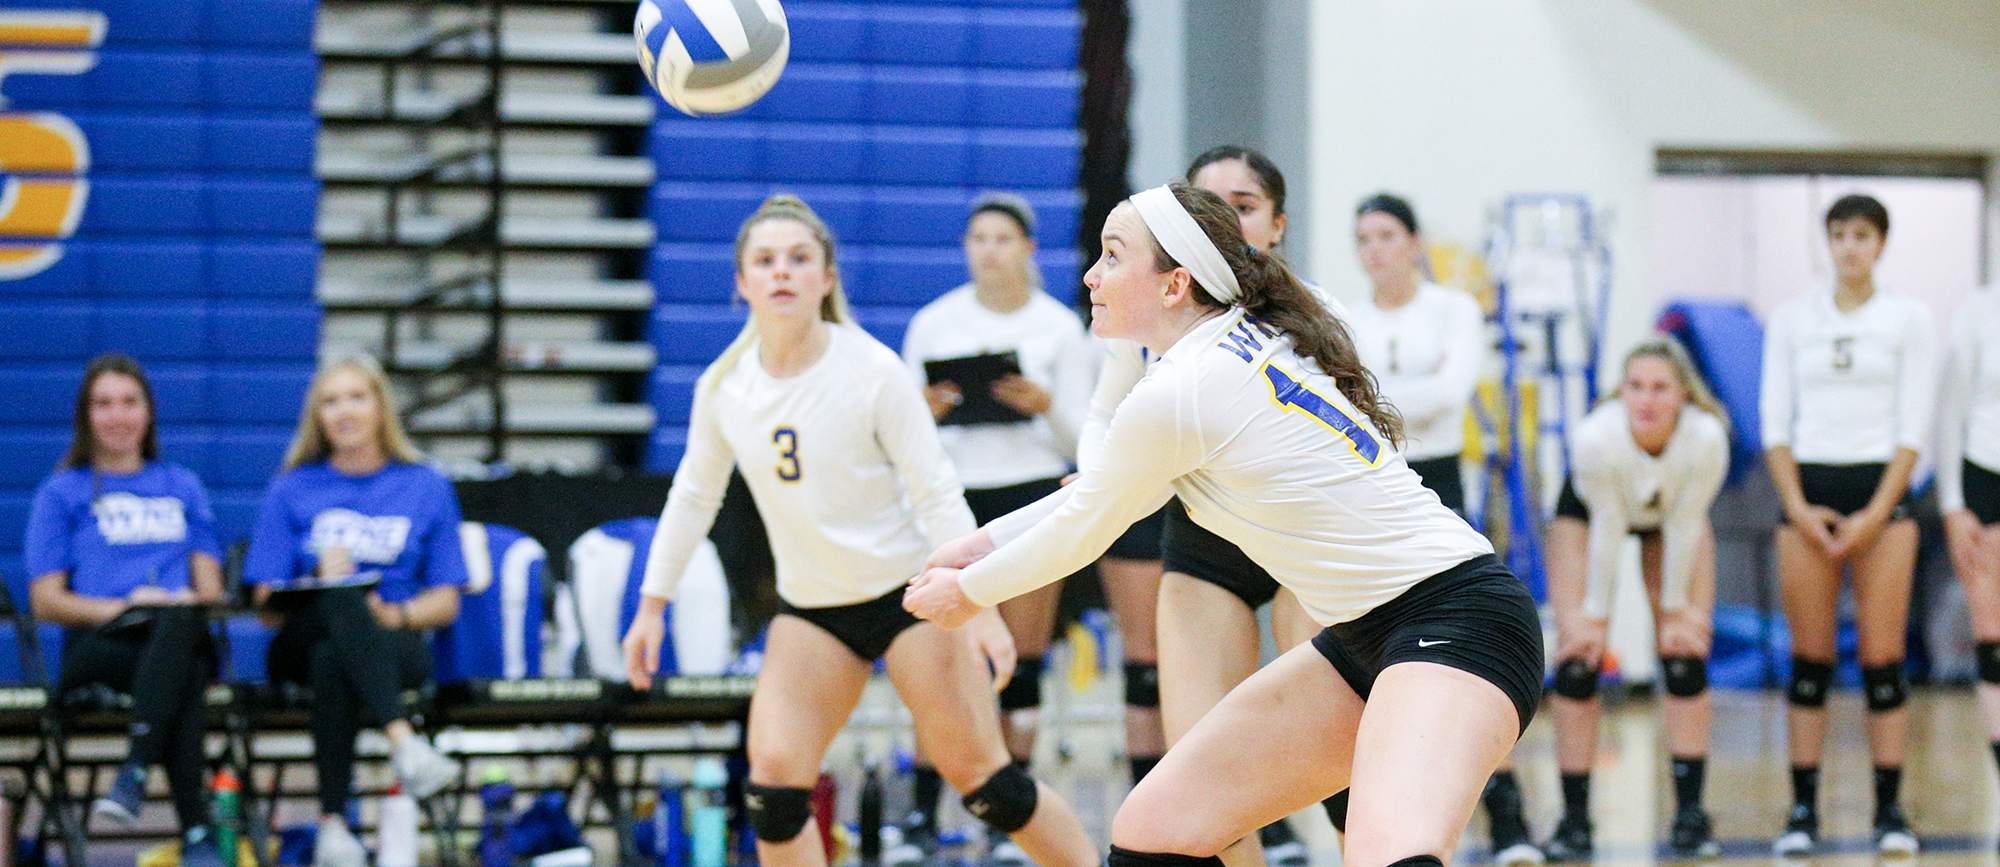 Senior Jenna Ferguson recorded a double-double with ten kills and 18 digs in Western New England's 3-1 win over Smith on Wednesday. (Photo by Chris Marion)